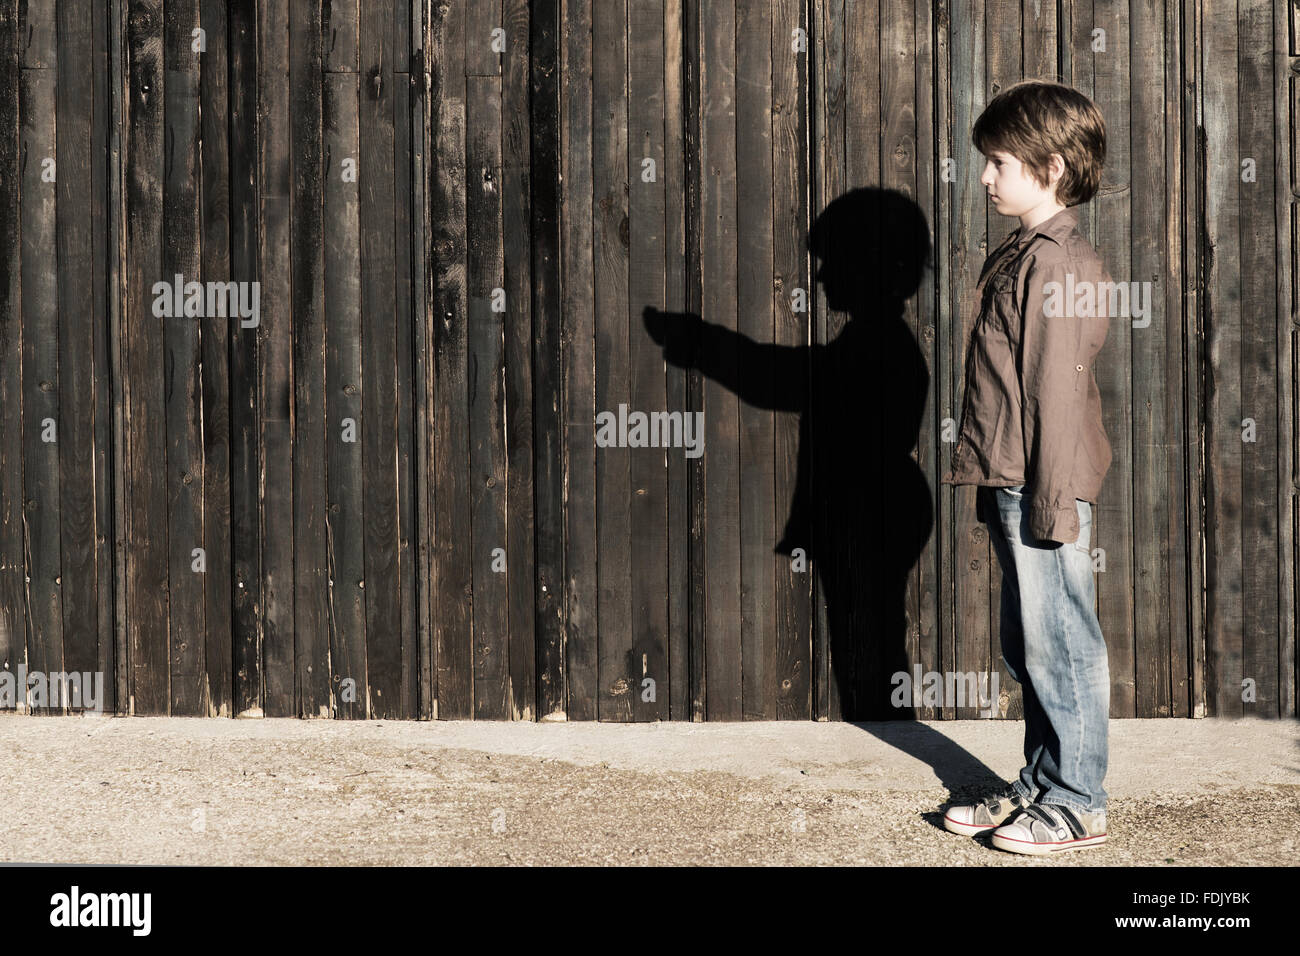 Boy standing next to a wooden fence with alter ego shadow - Stock Image